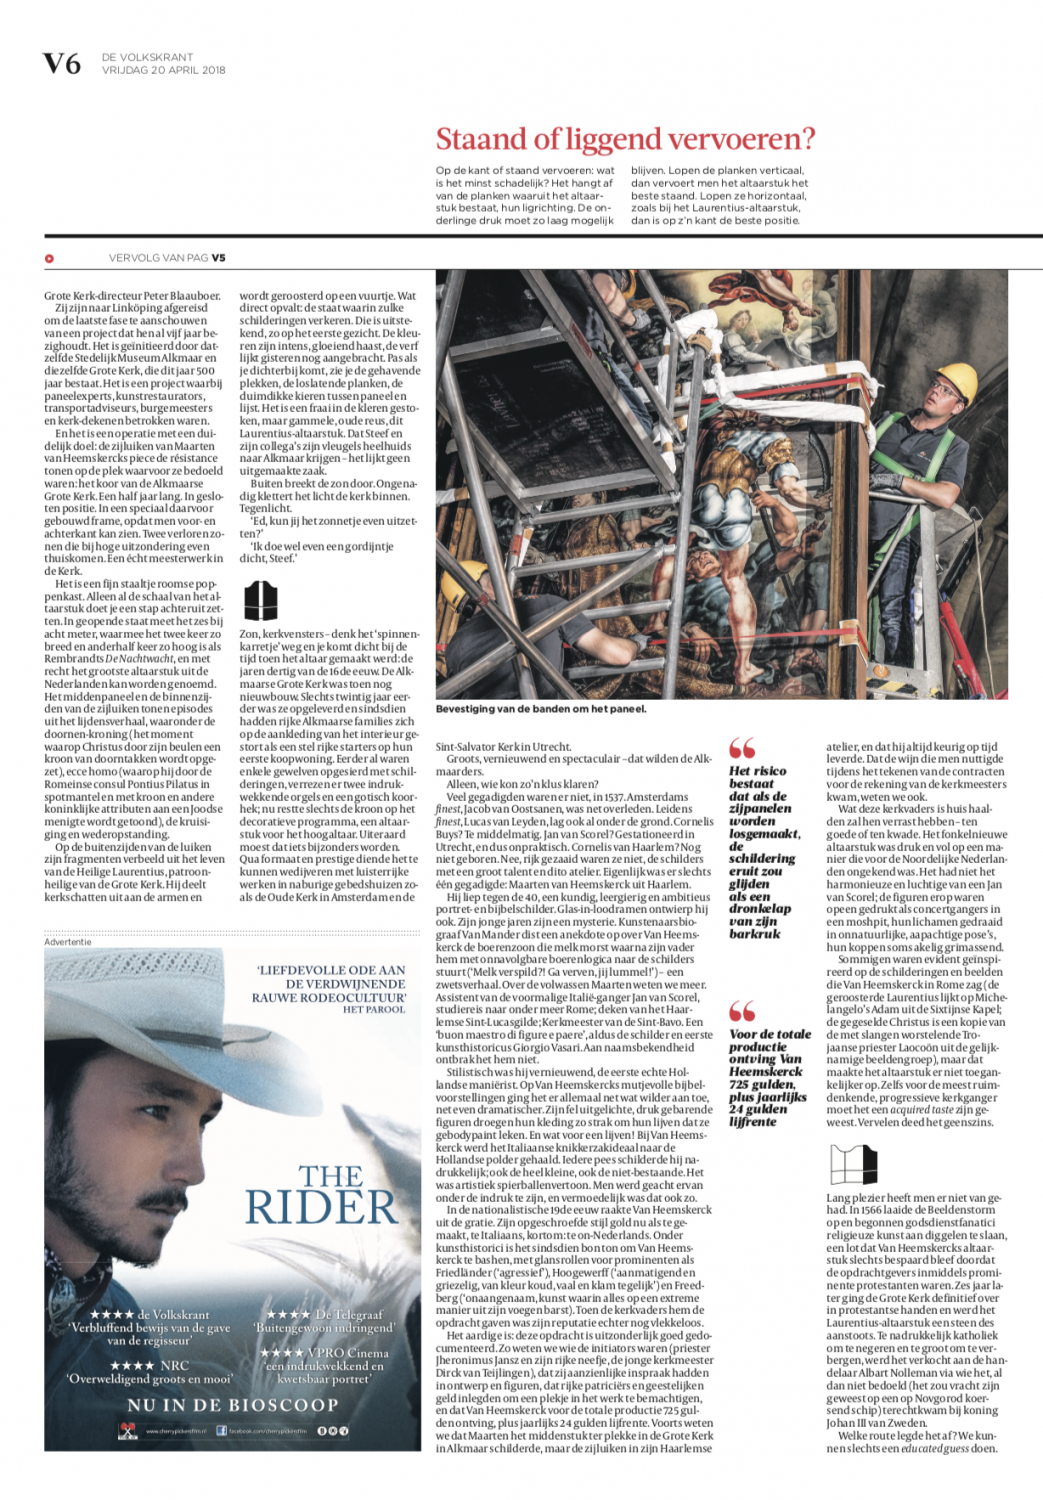 Art and Documentary Photography - Loading Volkskrant_PascalVossen_April2018_3.png